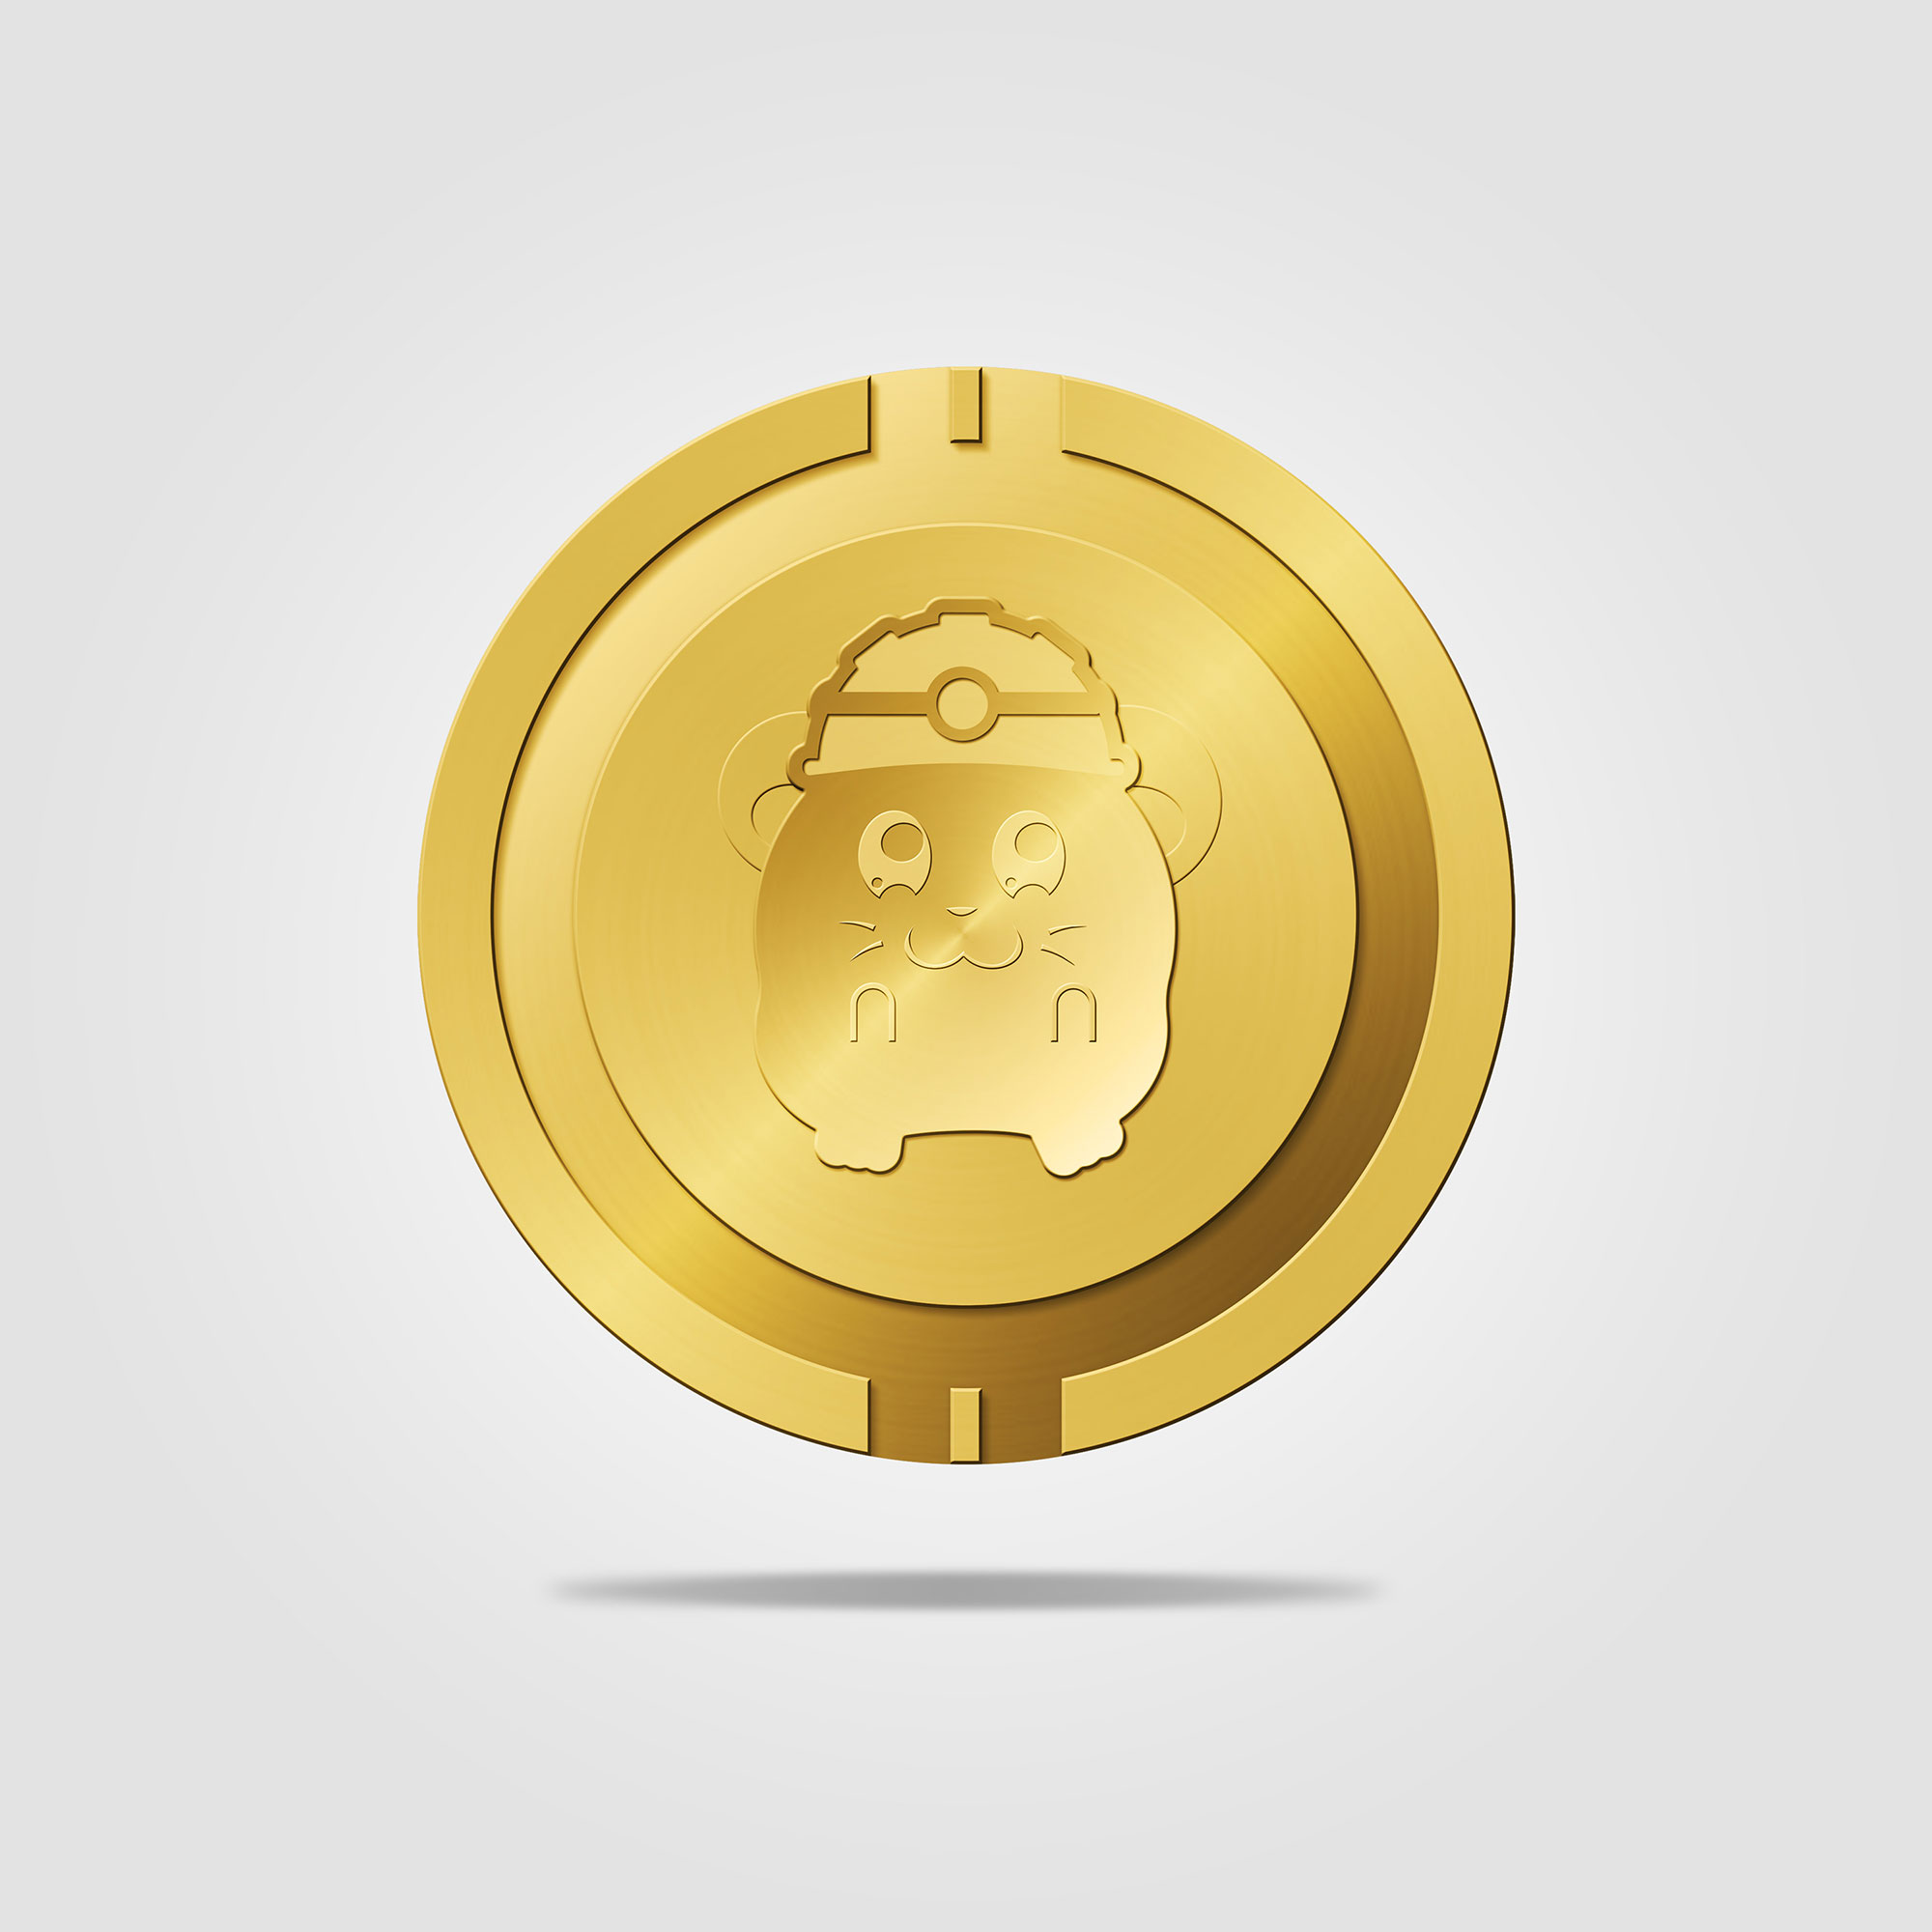 gold-hamster-coin